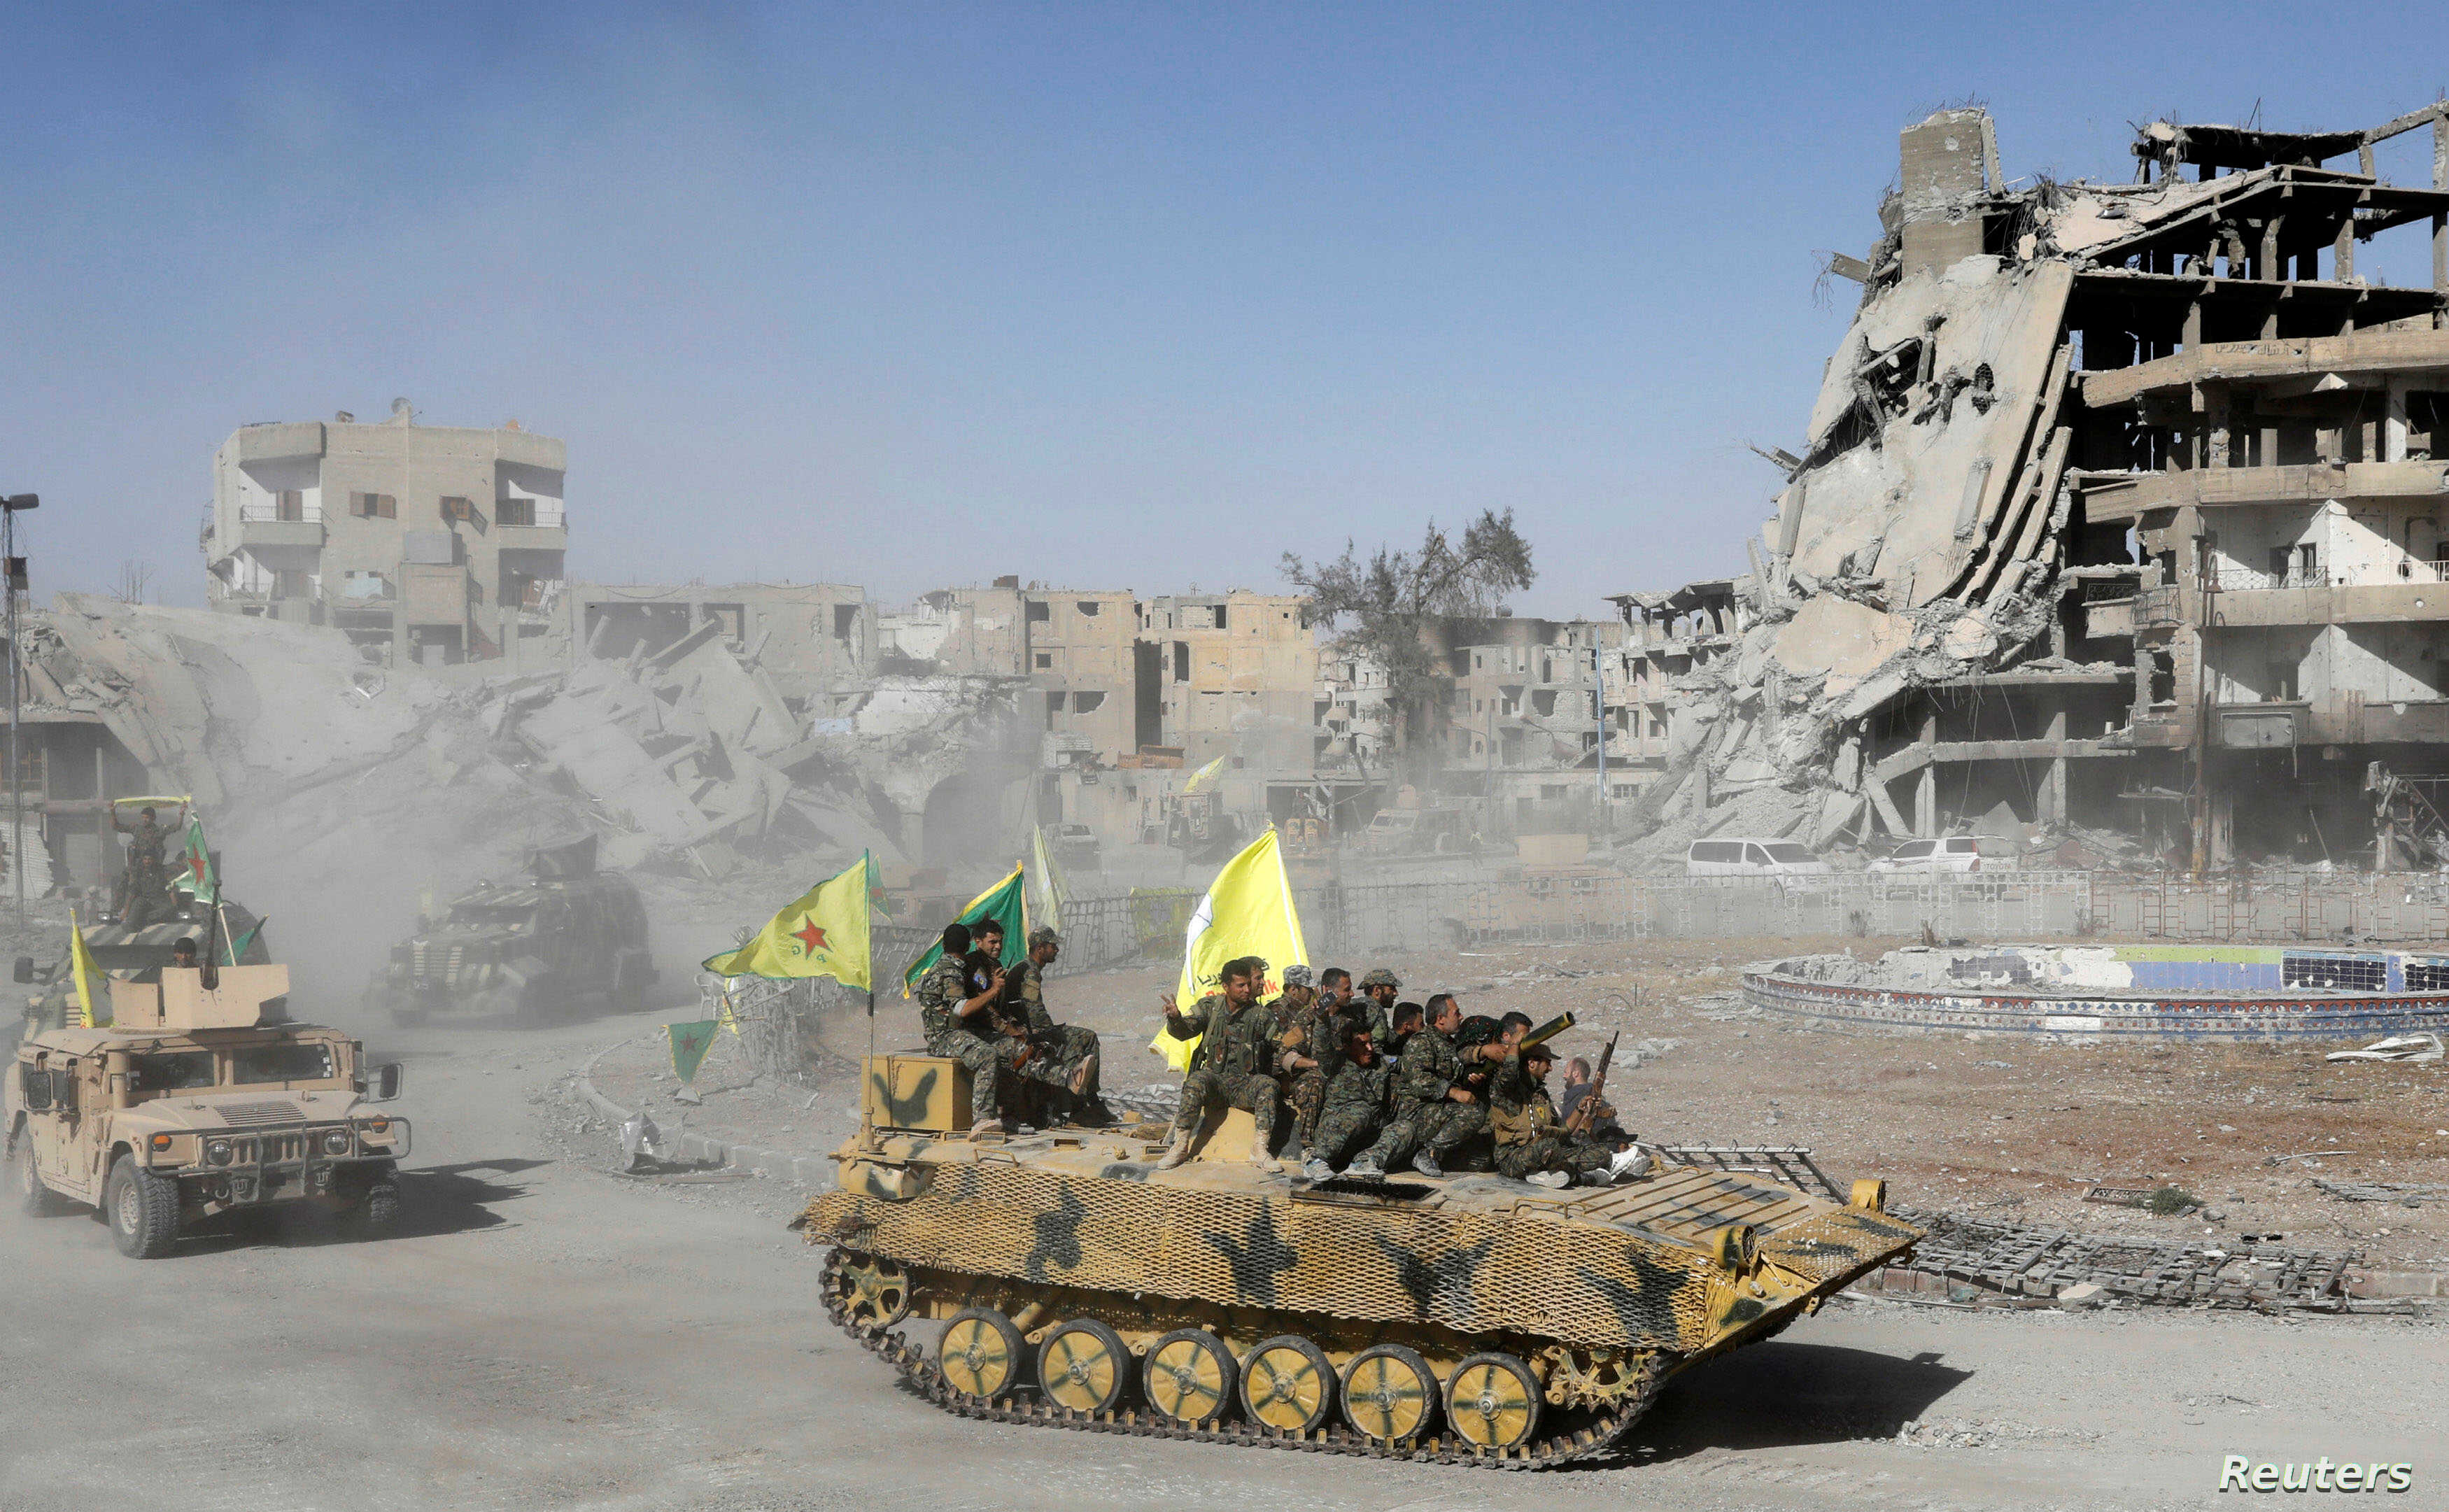 Syrian Democratic Forces (SDF) fighters ride atop of military vehicles as they celebrate victory in Raqqa, Syria, Oct. 17, 2017.